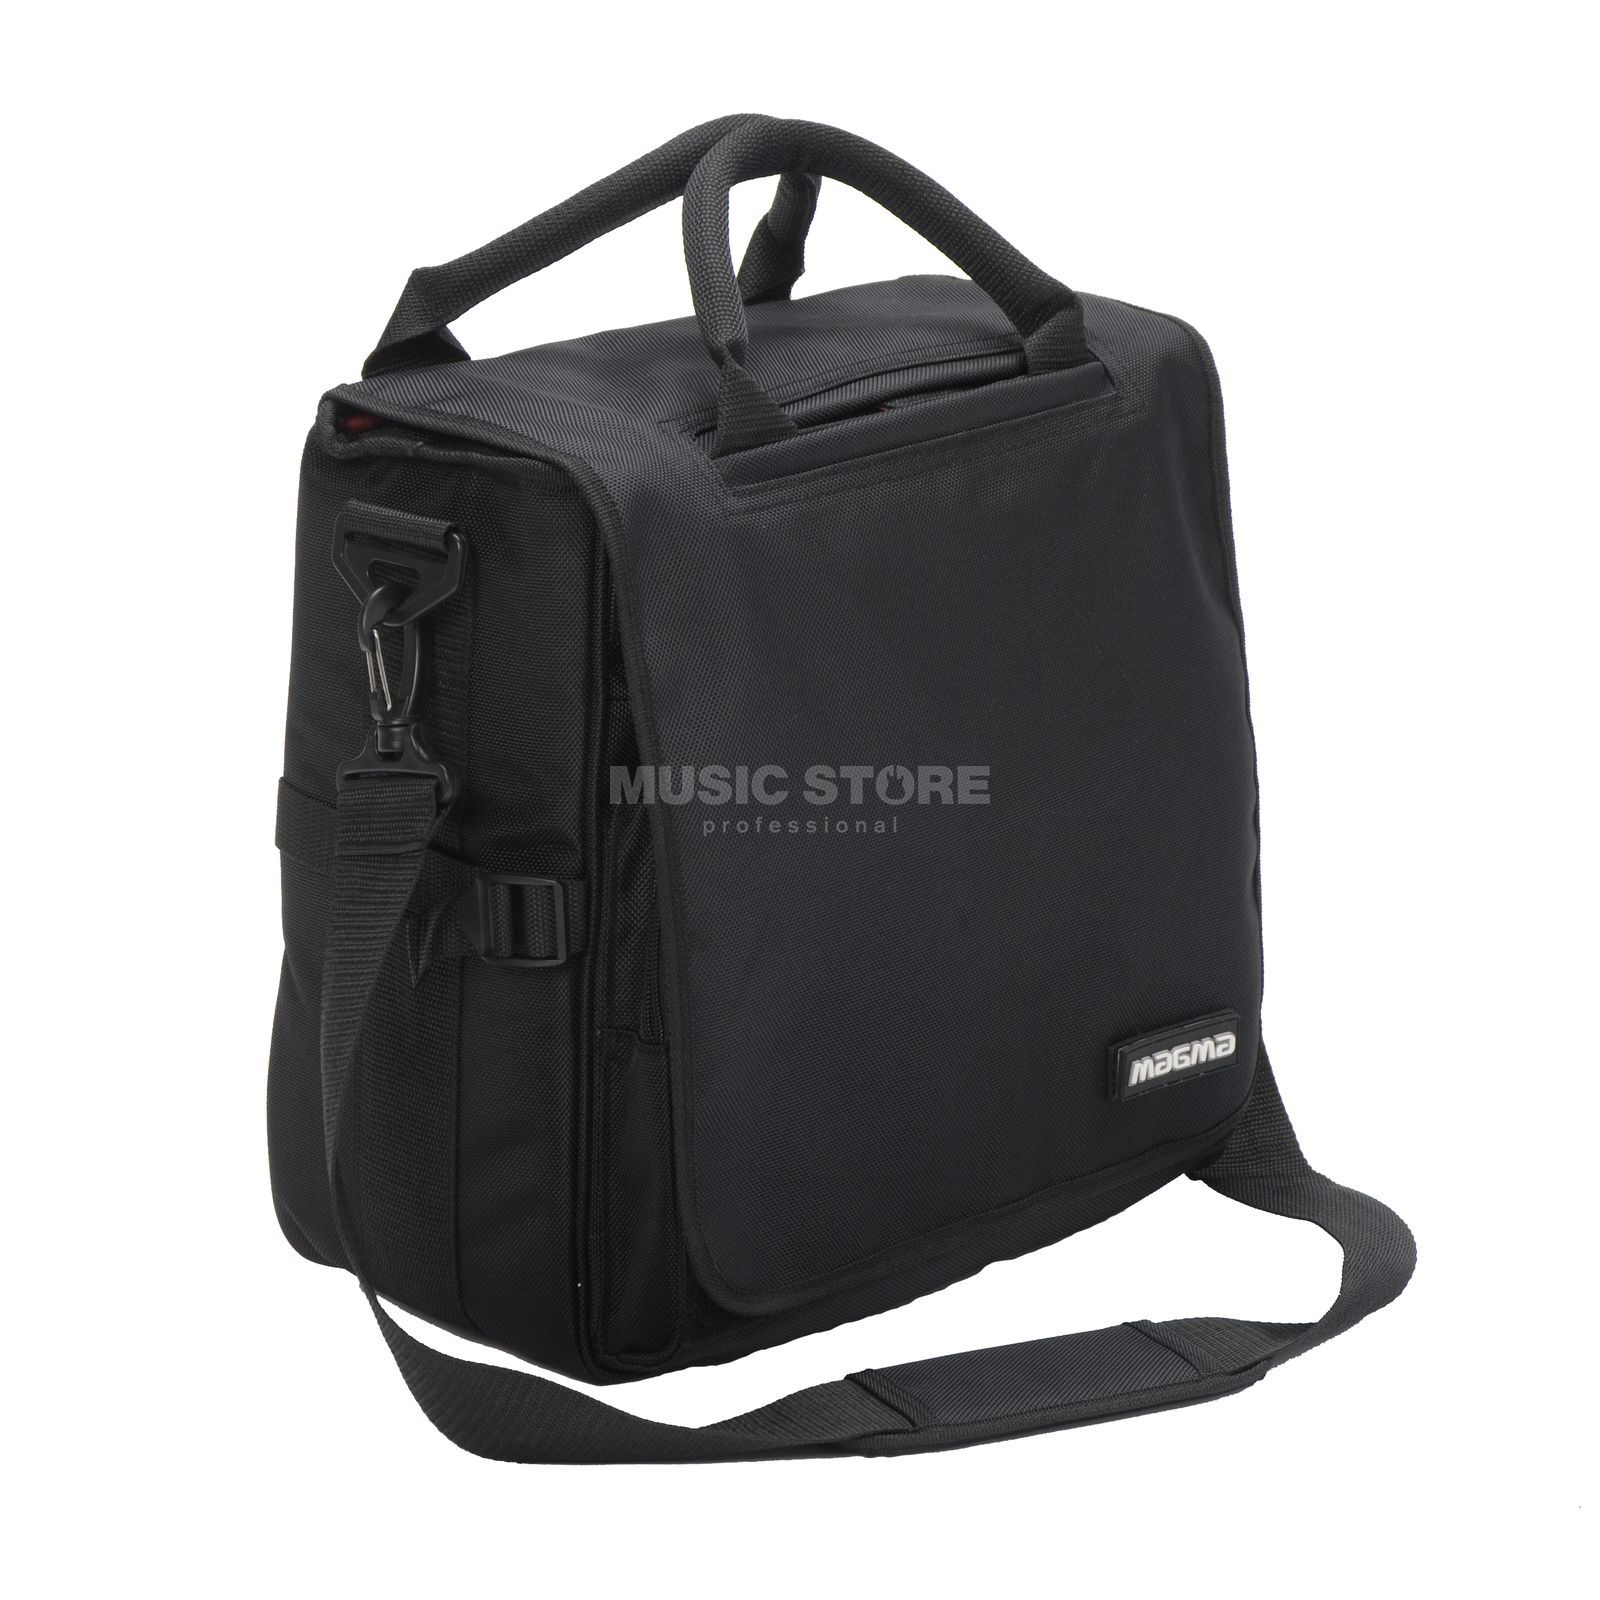 Magma LP Bag 40 Black DJ LP Bag for 80 Vinyls, Pad Immagine prodotto